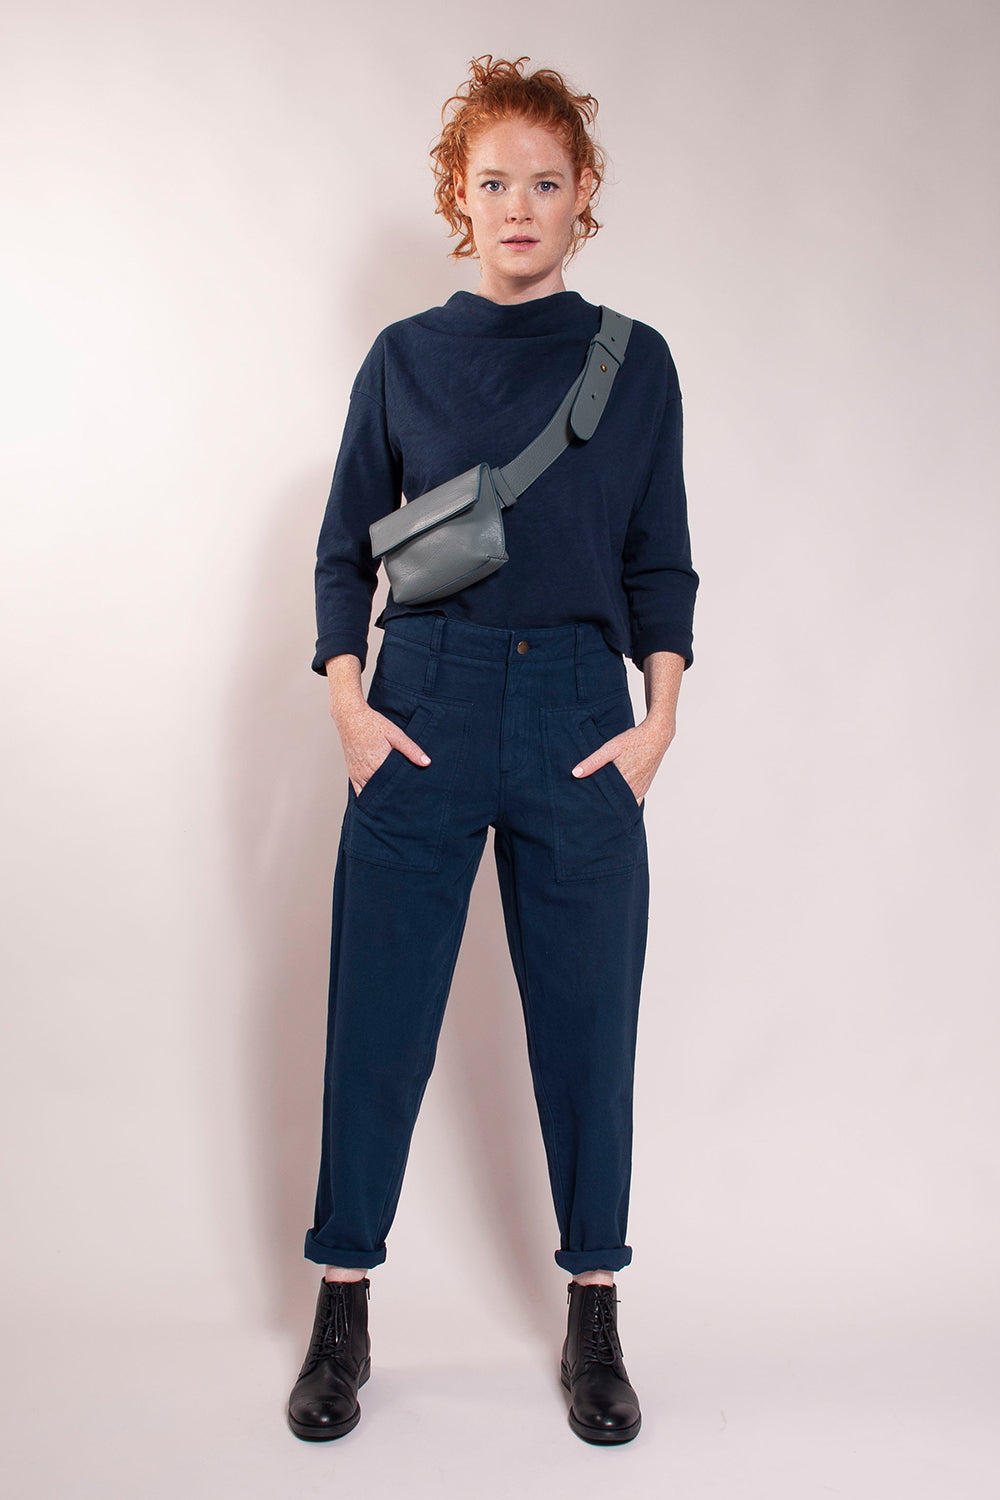 "High waist, generous fit, tapered cropped ankle. Front patch pockets with welt opening and back patch pockets.  27 1/2"" inseam. Preshrunk 100% cotton canvas. These are your new everyday pants! Model wears a size 27."